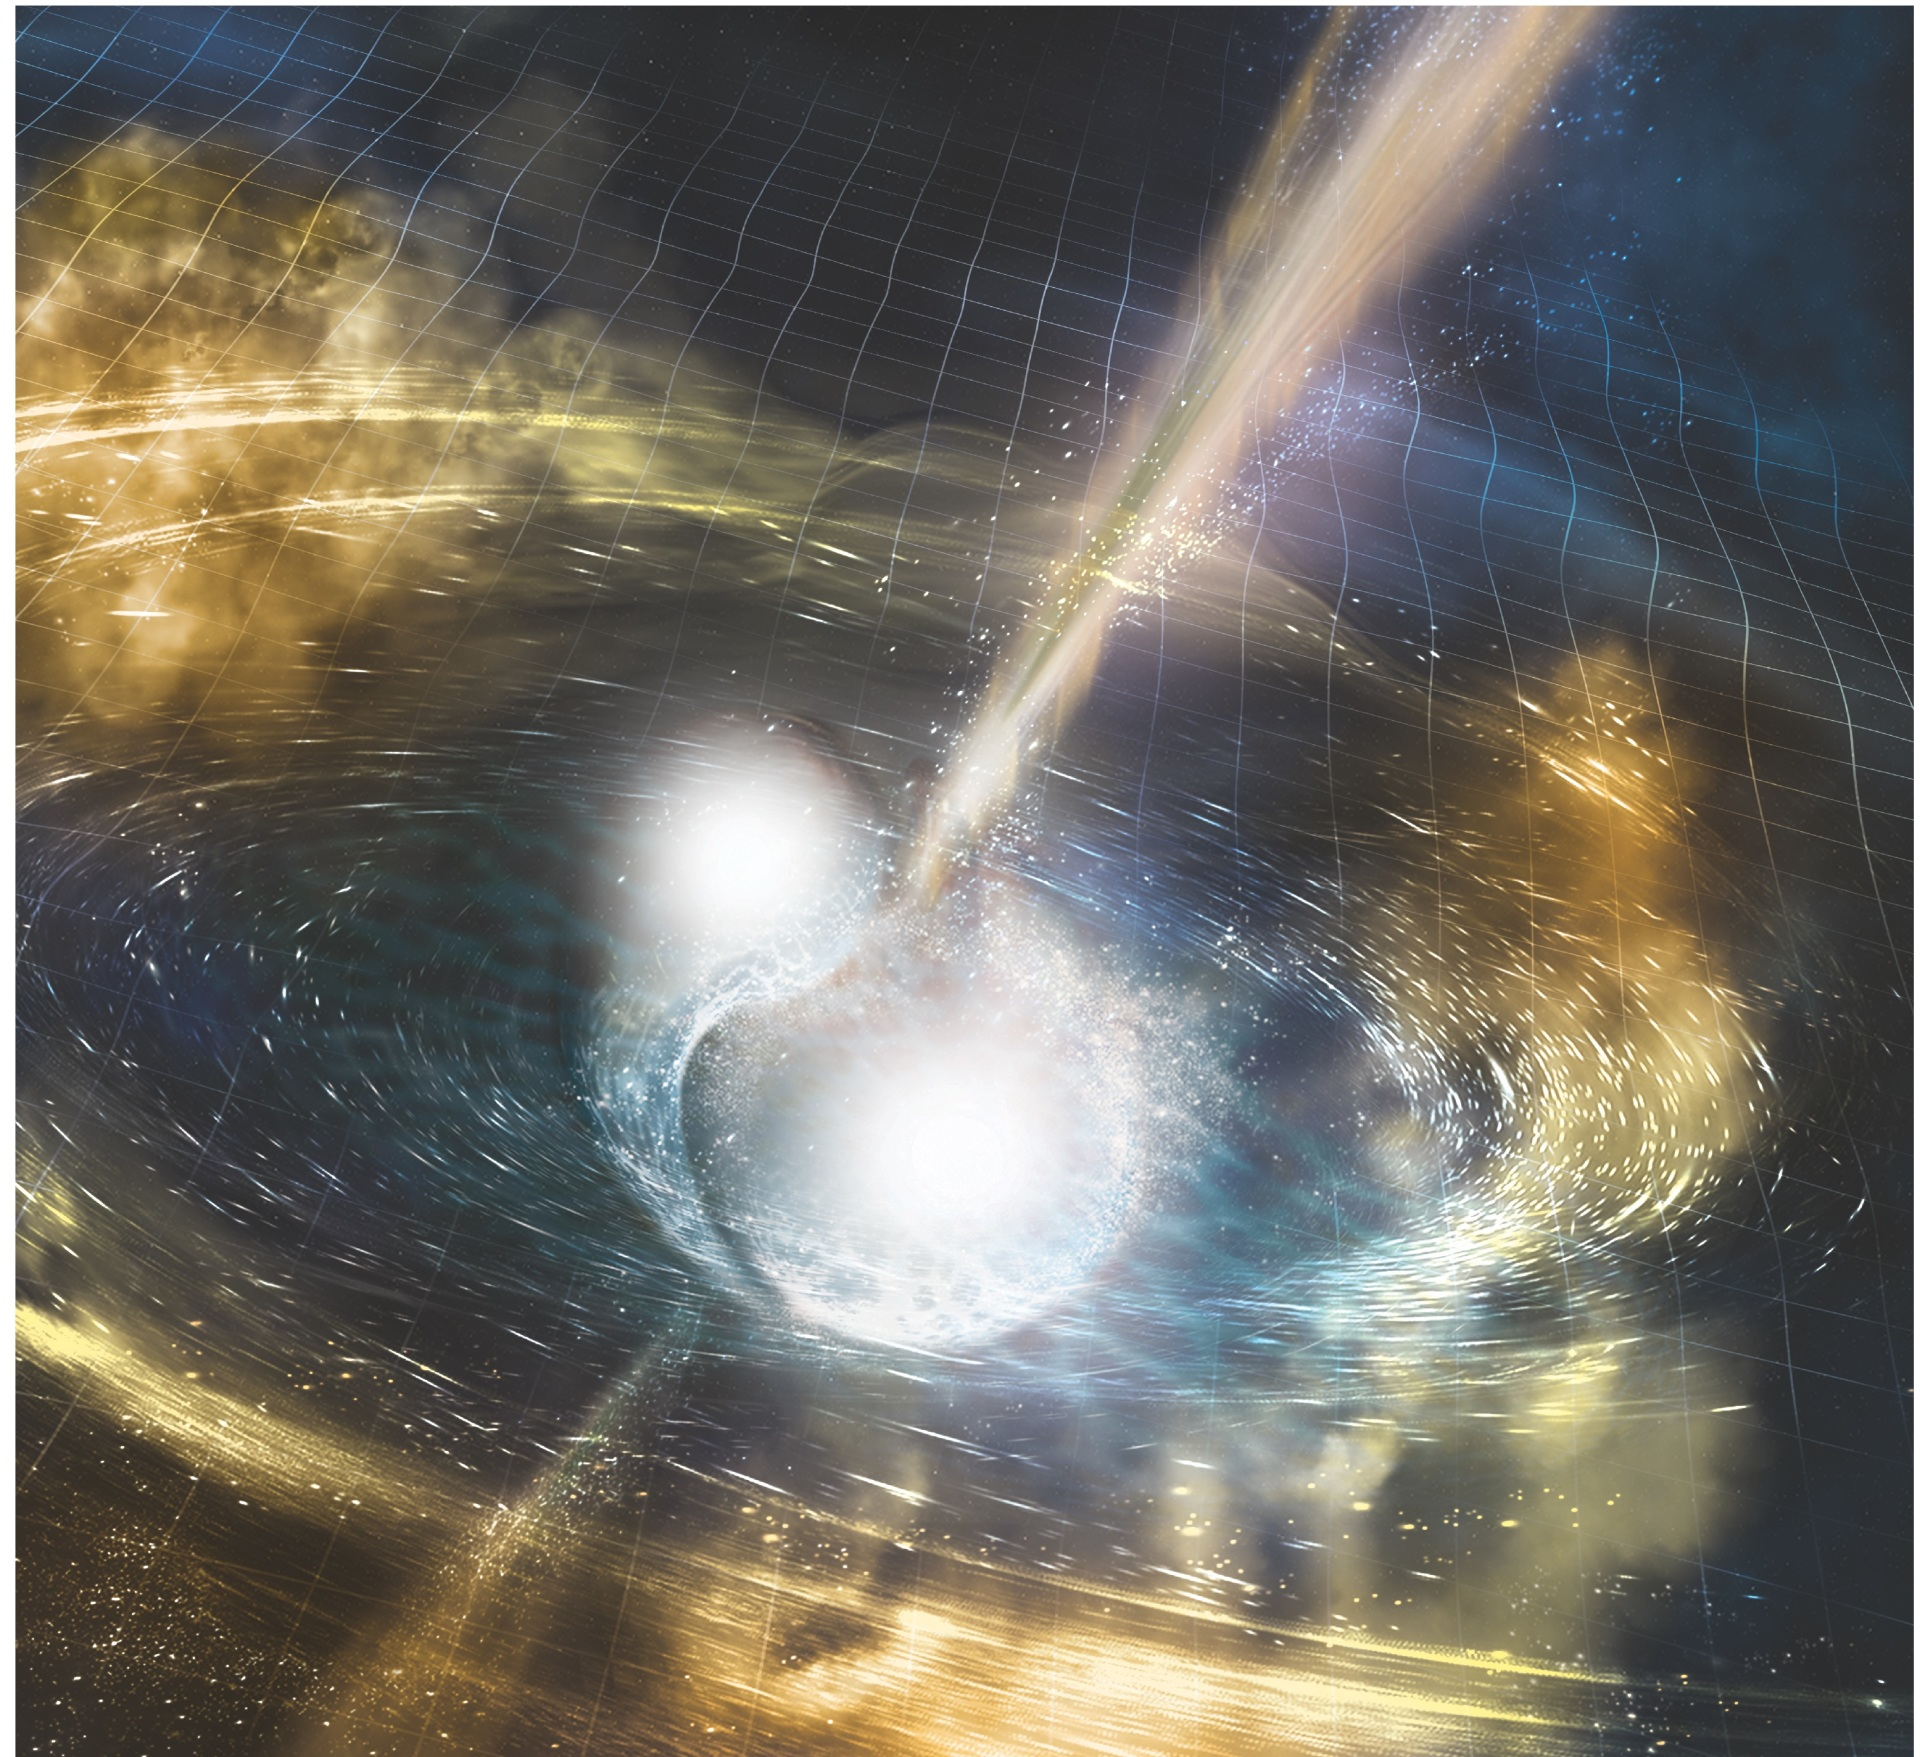 Gravitational waves of two neutron stars